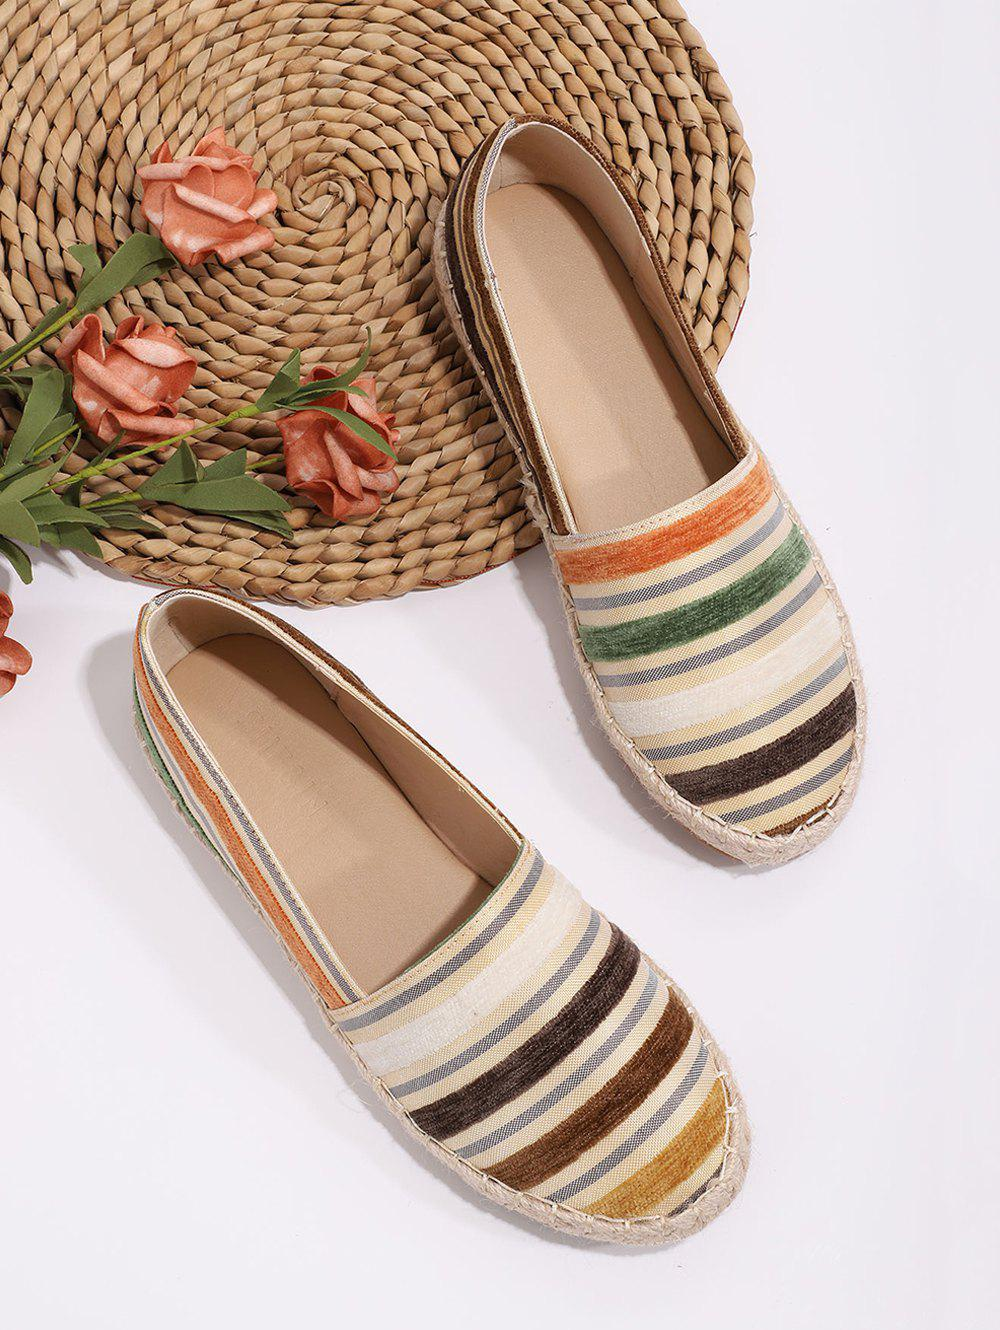 Sale Colorful Striped Espadrilles Loafer Flat Shoes